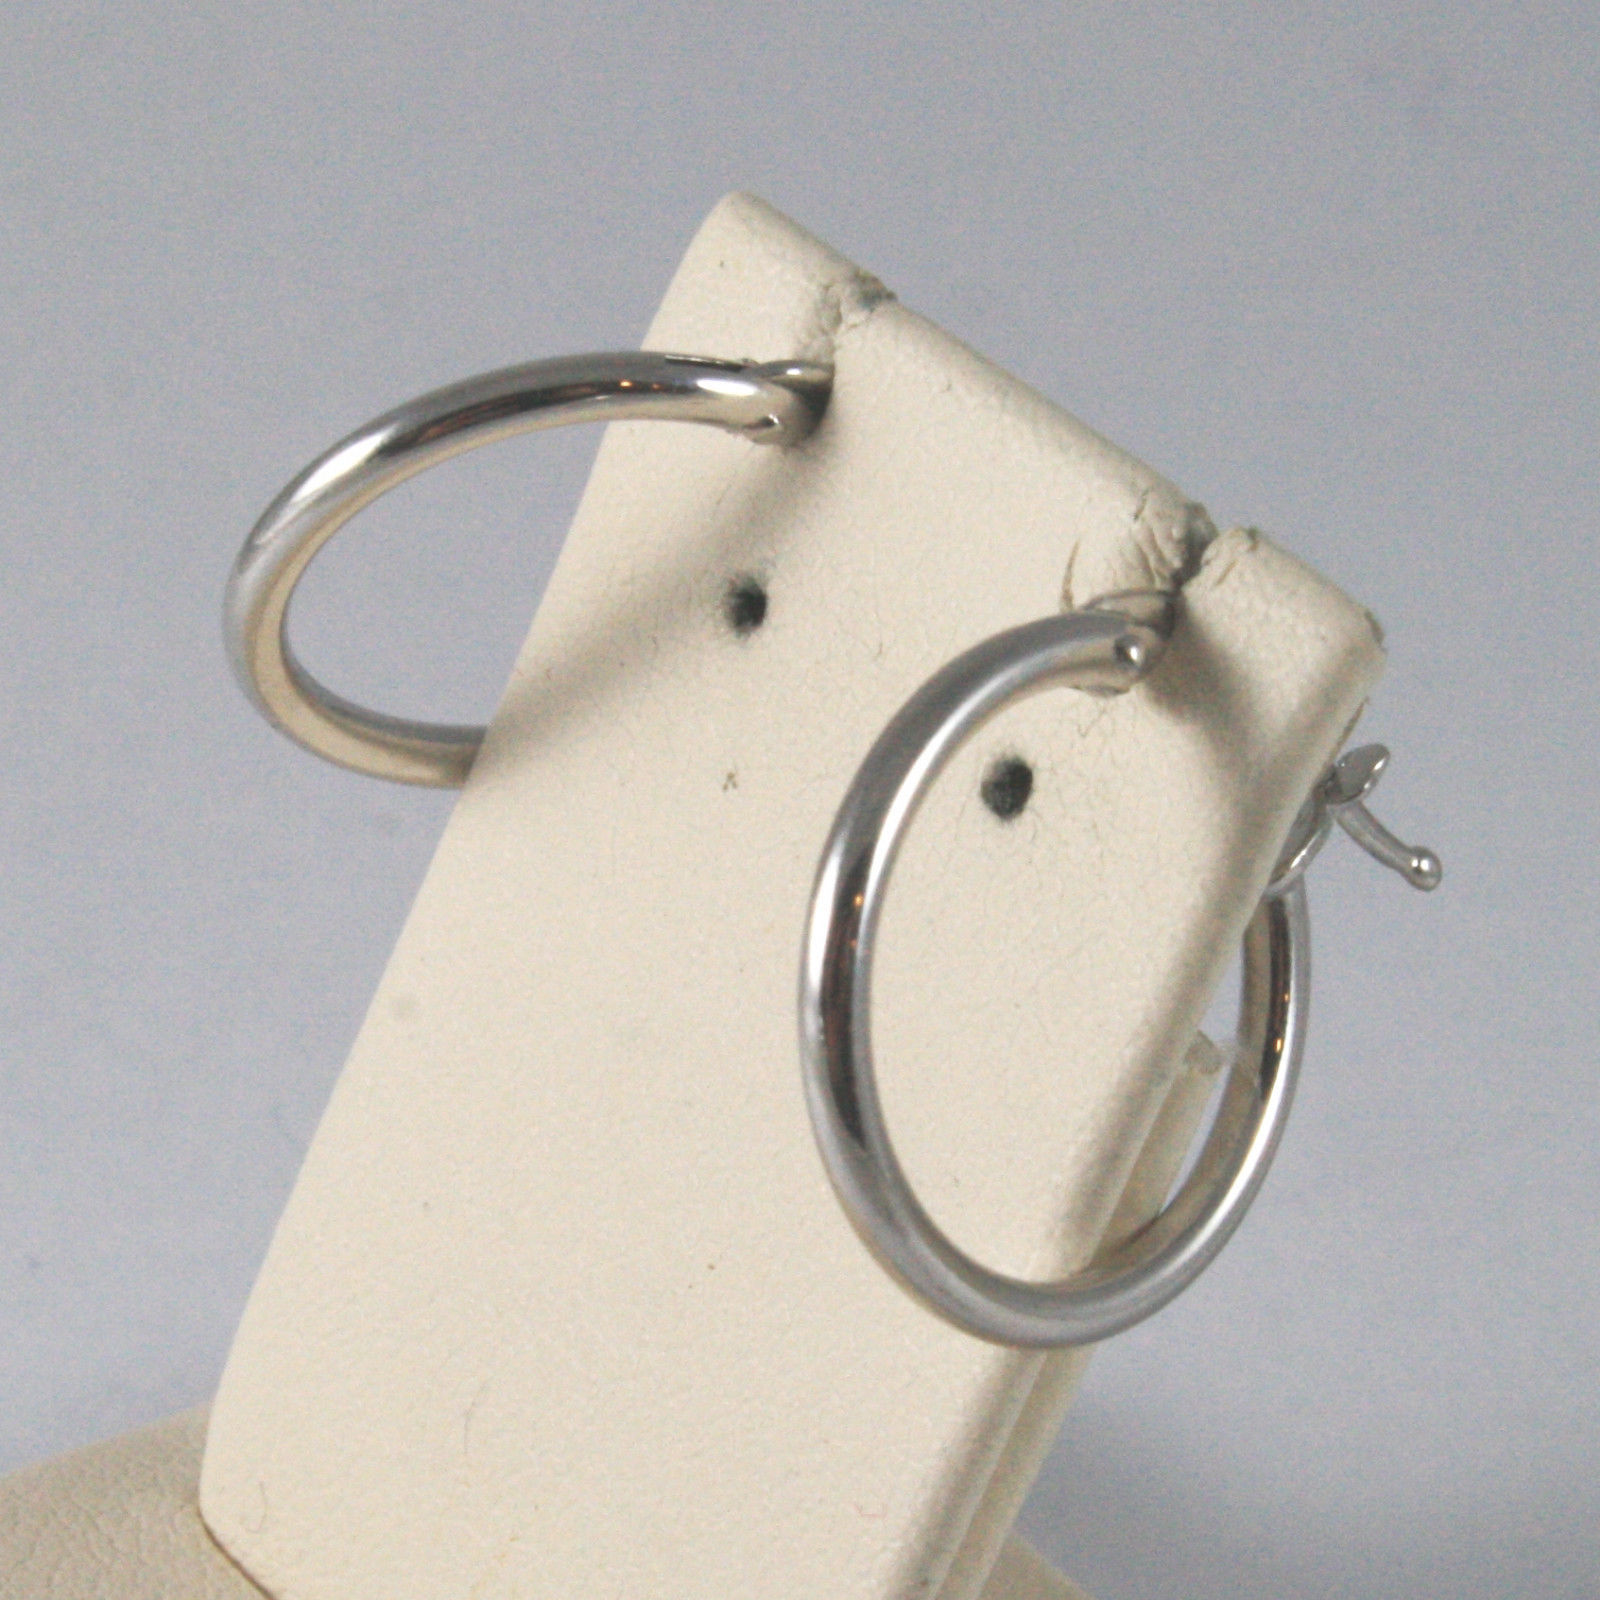 SOLID 18KT. WHITE GOLD CIRCLE TUBE EARRINGS DIAMETER 0,63 IN MADE IN ITALY.